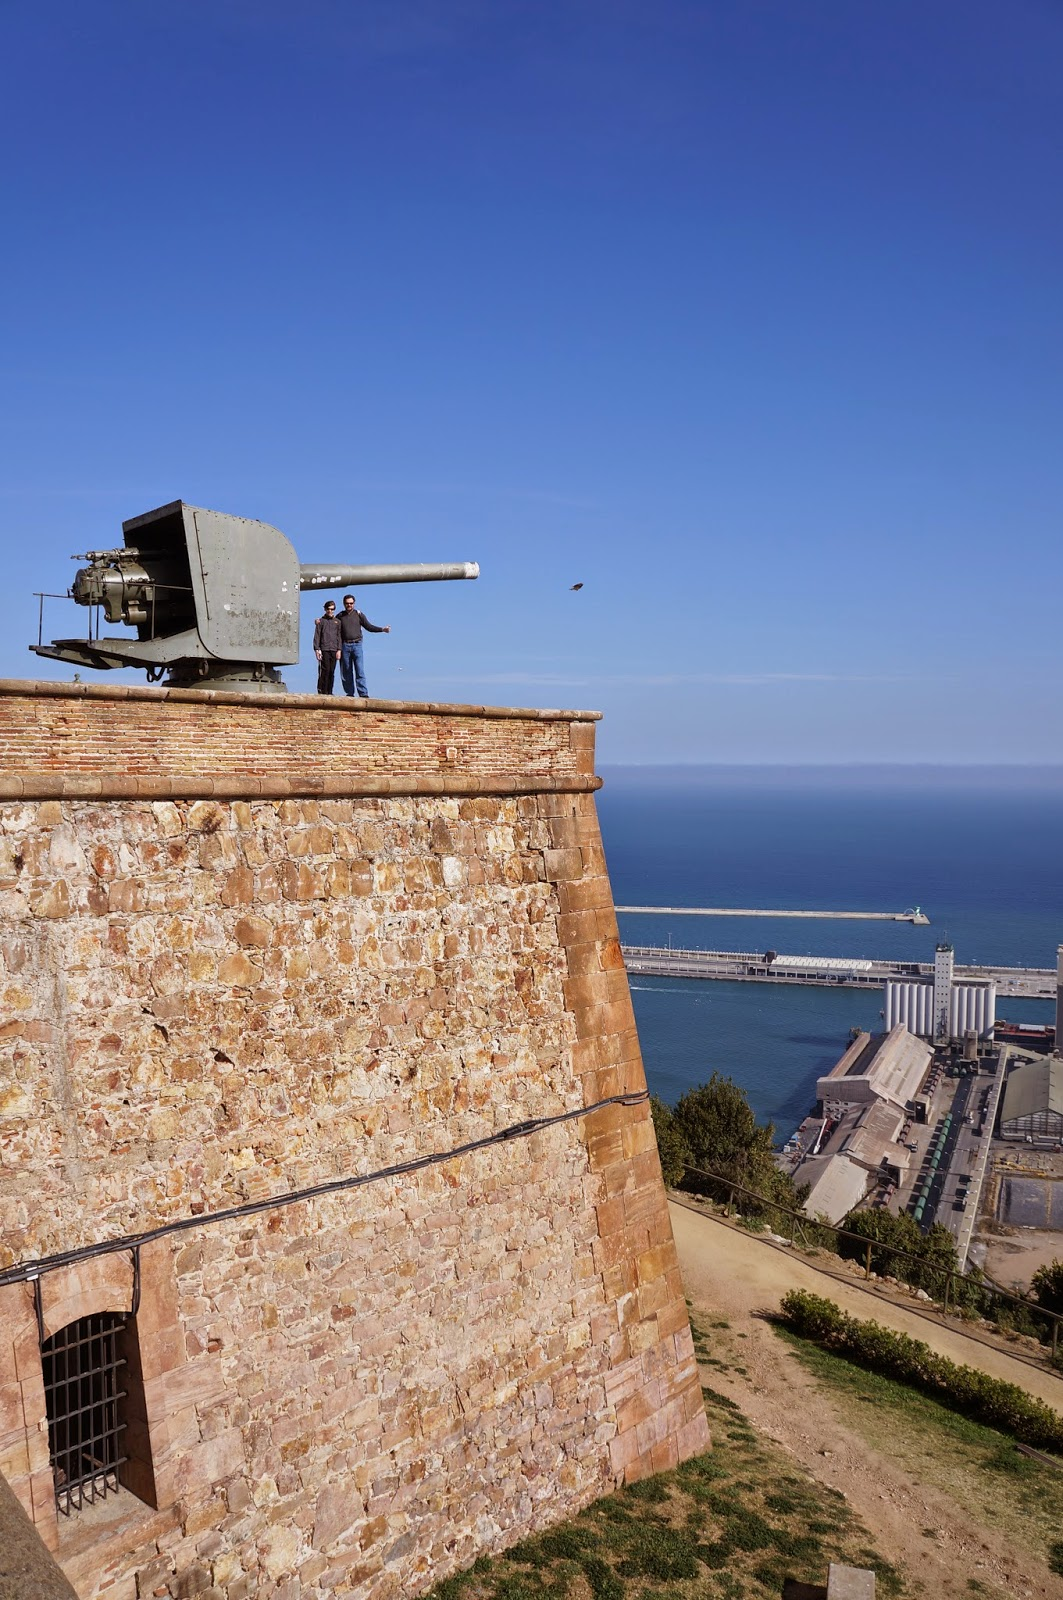 Big cannon on Montjuic Castell / Castle in Barcelona Spain.